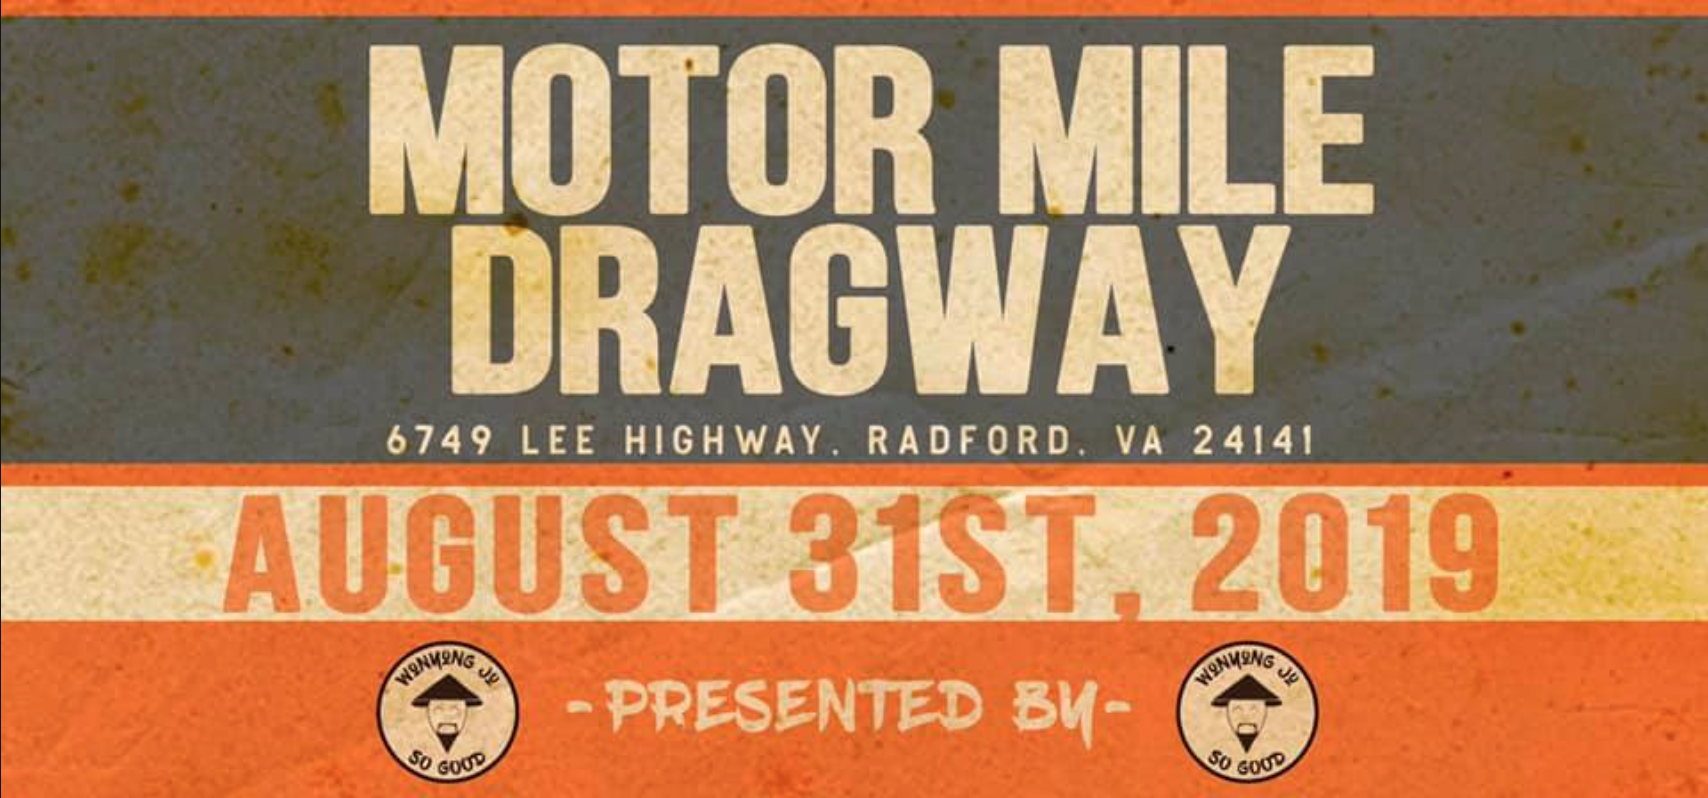 Motor Mile Dragway